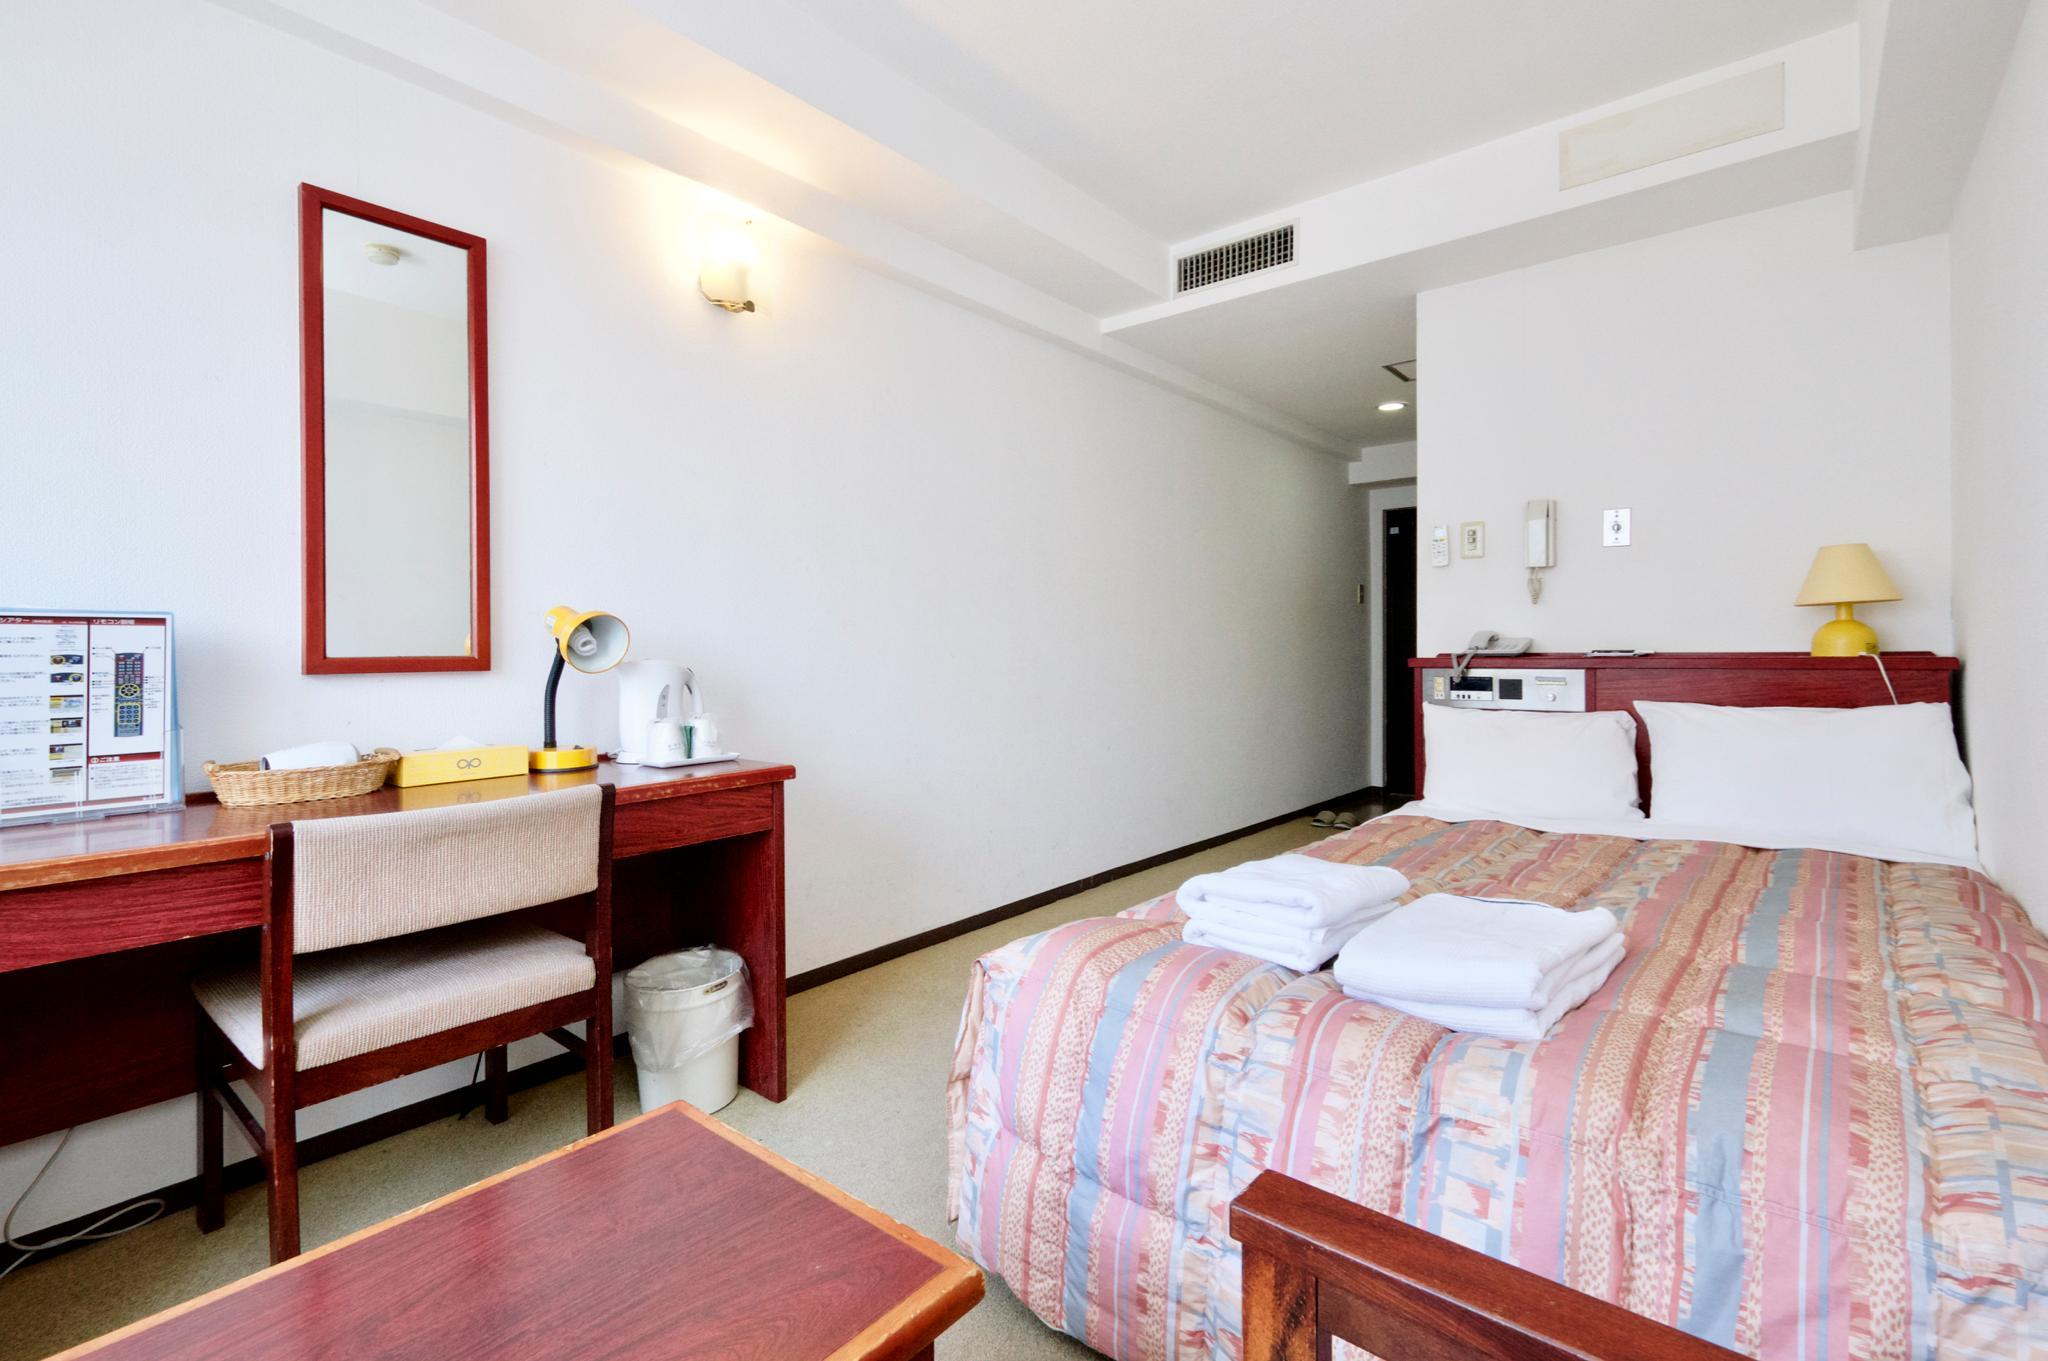 Kamar Semi-Double Bebas Asap Rokok (Semi-Double Room Non-Smoking)